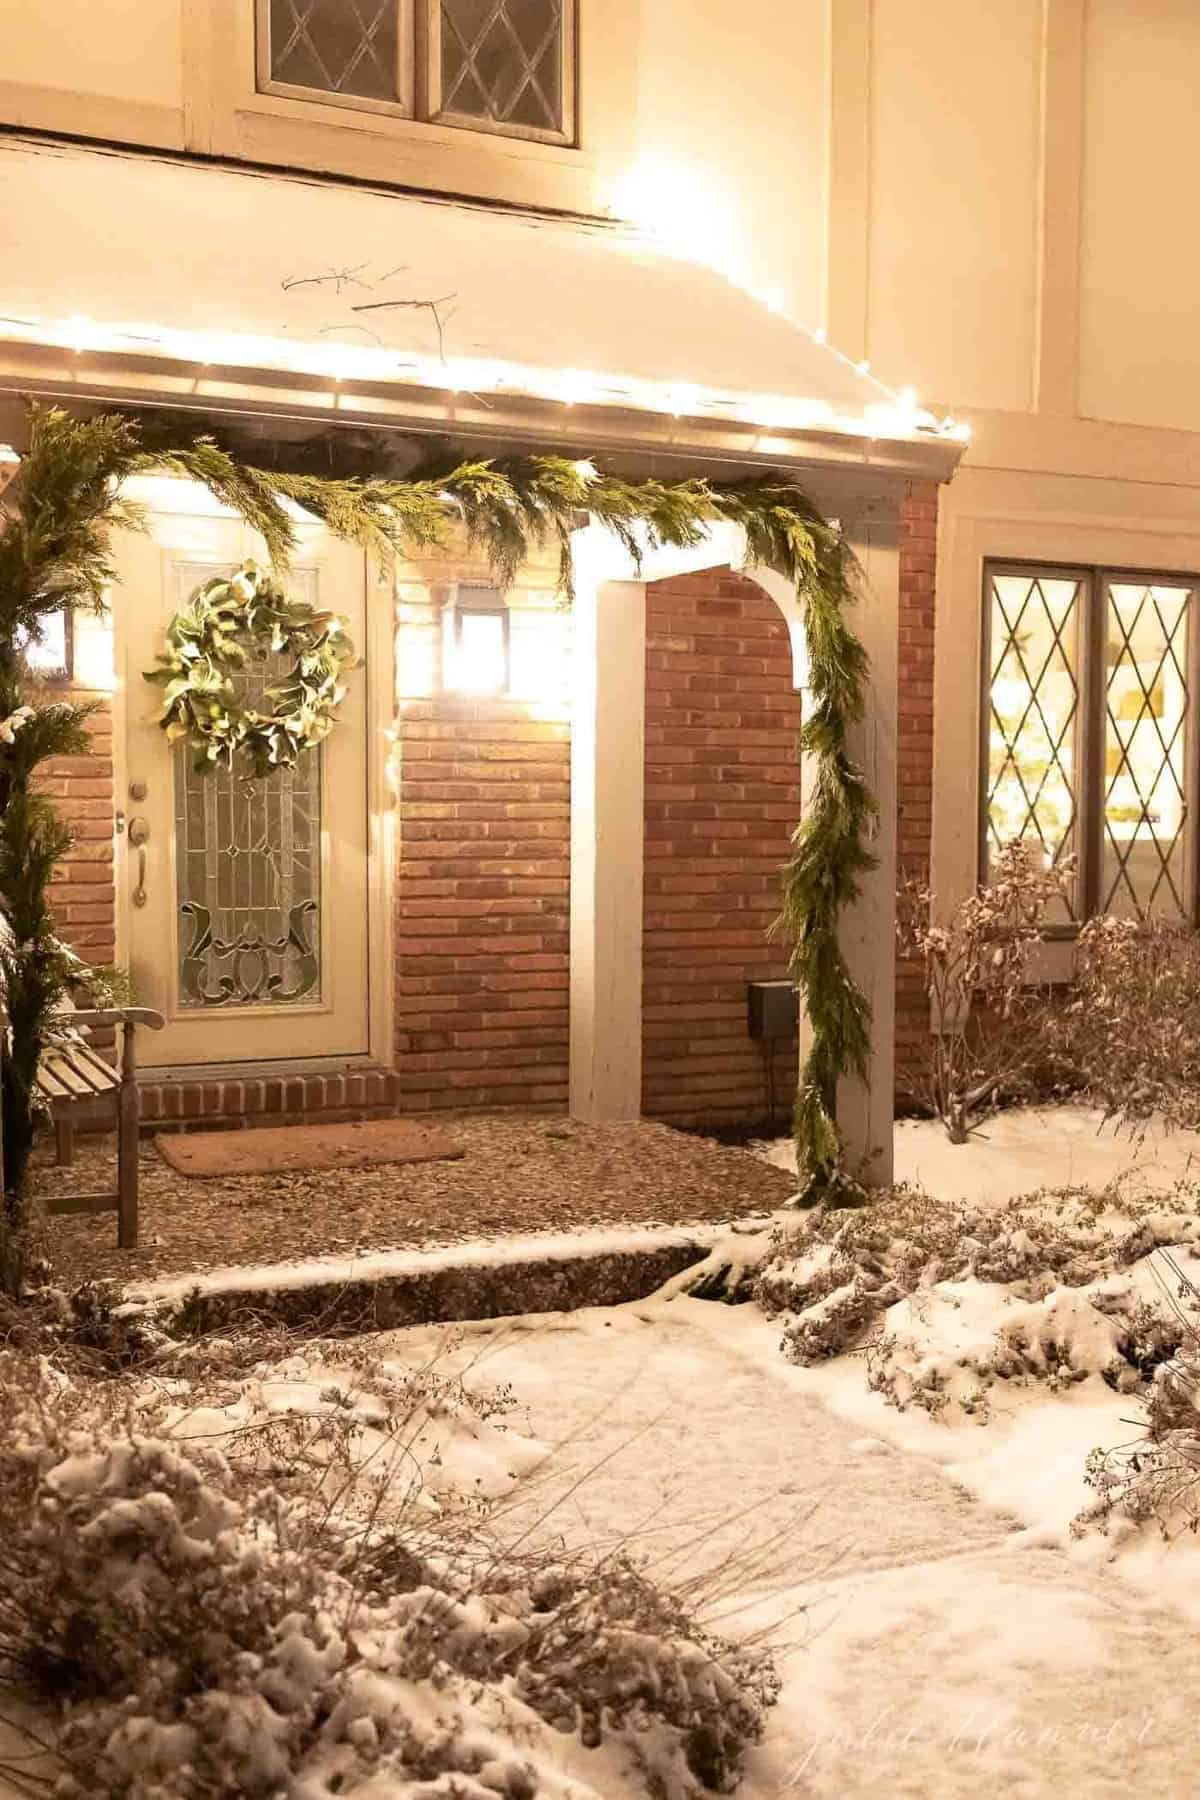 Exterior of a home, snow on the ground and greenery garland on posts for Christmas.